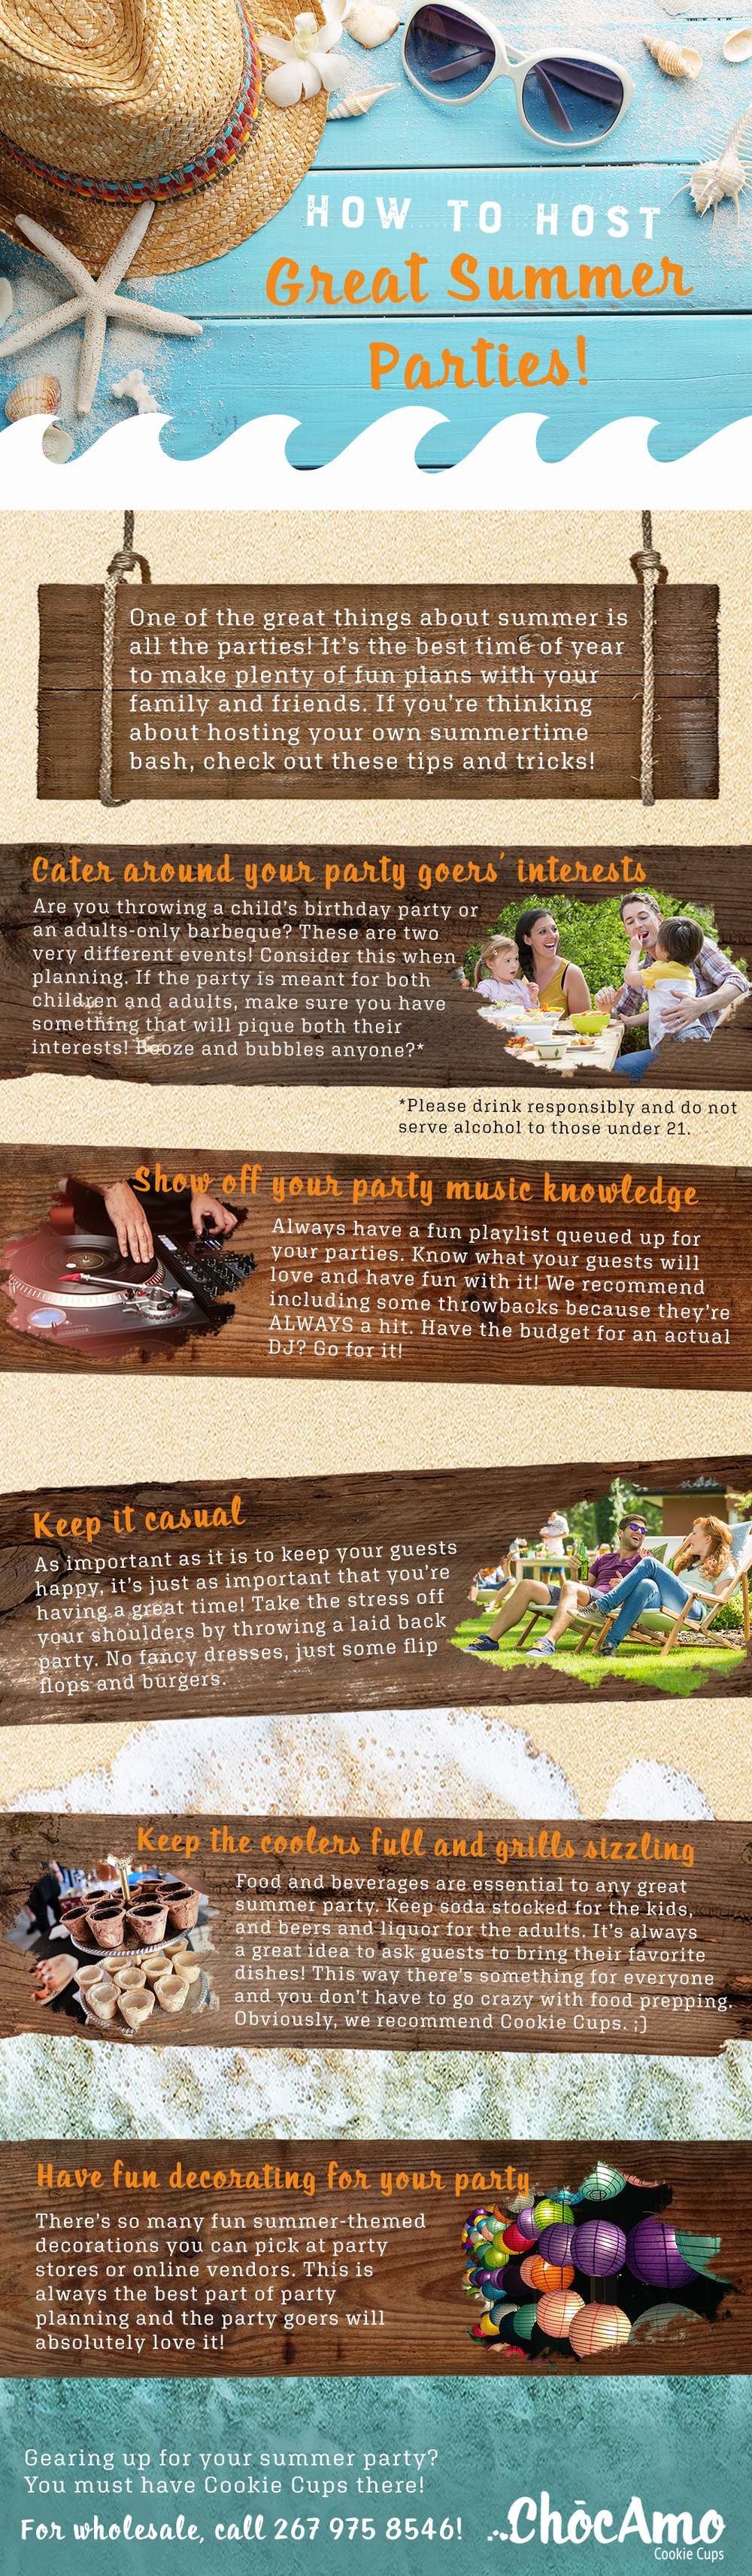 Chocamo_SummerParties_Infographic.png